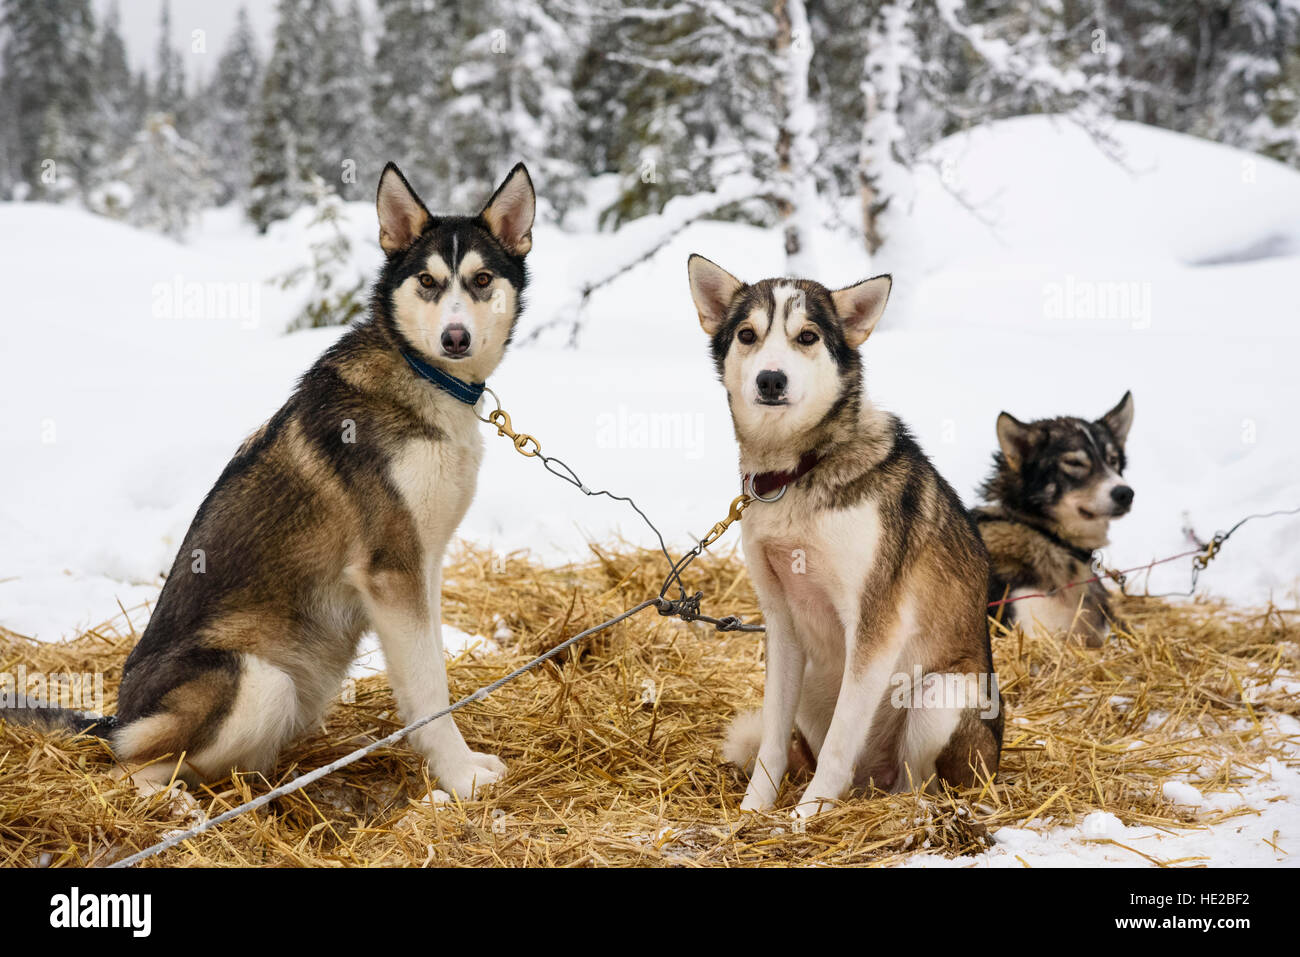 Husky dogs, Dog sledding in Vindelfjällen, Sweden - Stock Image